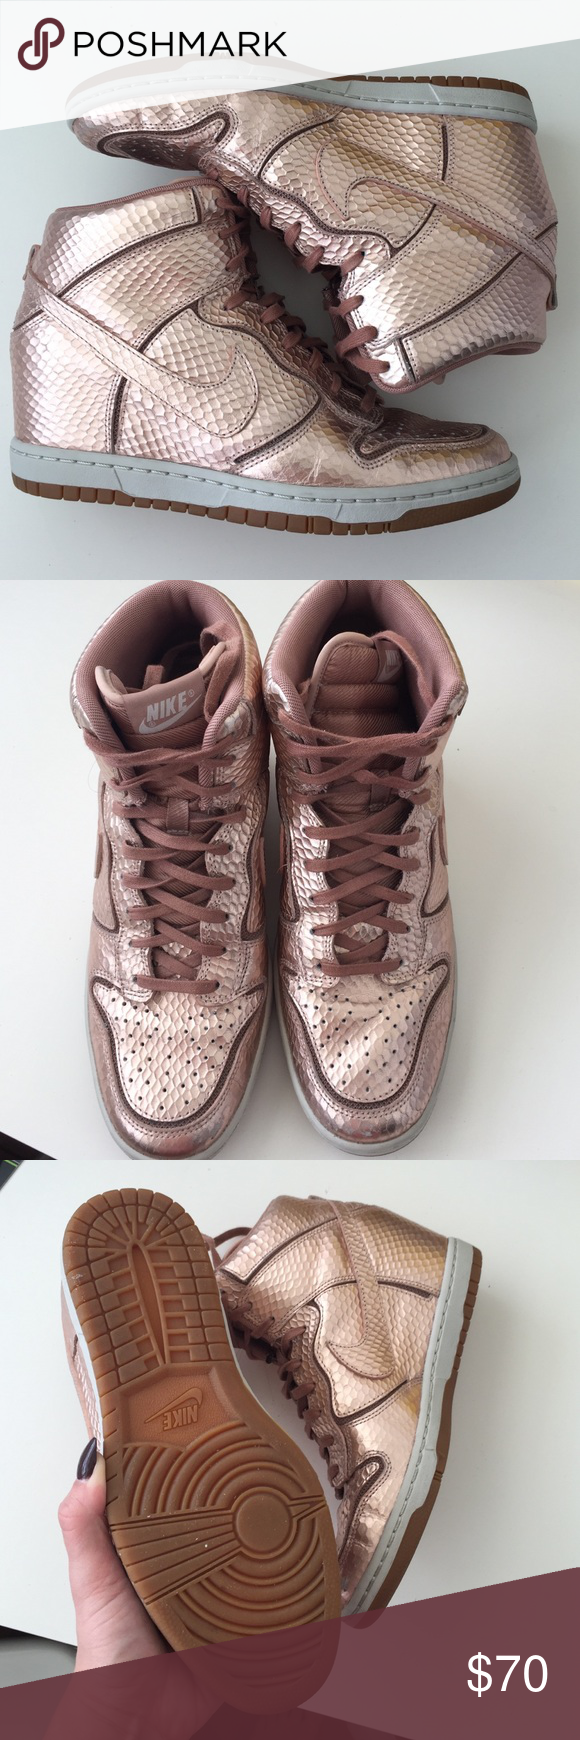 Nike Dunk Sky Hi Rose Gold size 9.5 Like new size 9.5 rose gold Nike Dunk  Sky Hi (wedge sneaker) wedge is about 2